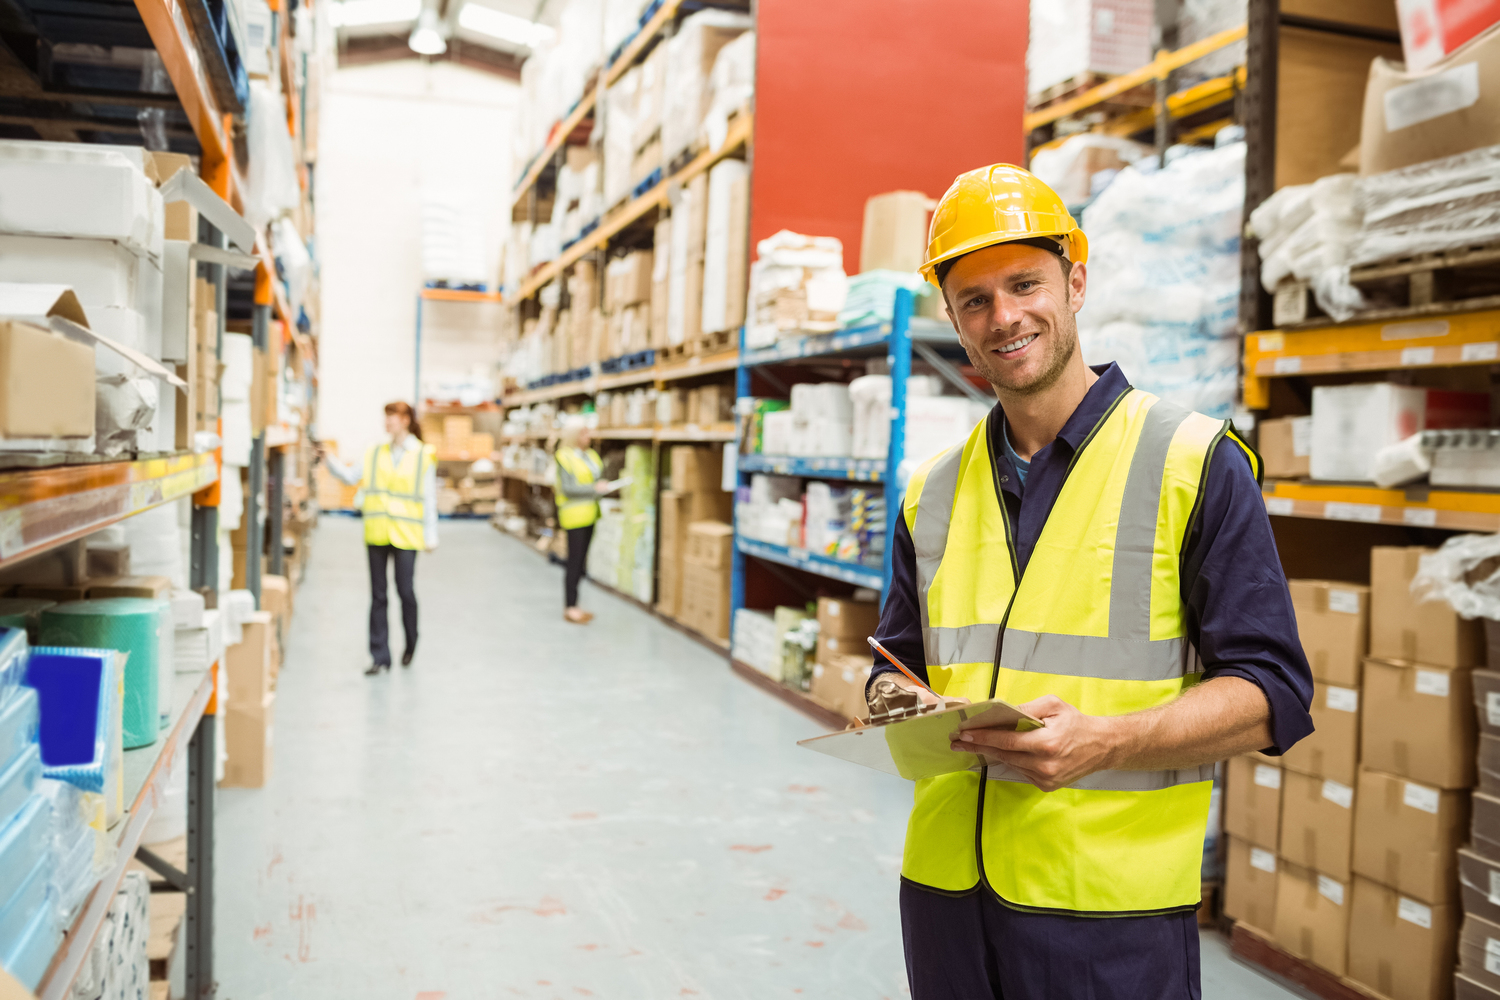 bigstock-Warehouse-worker-smiling-at-ca-